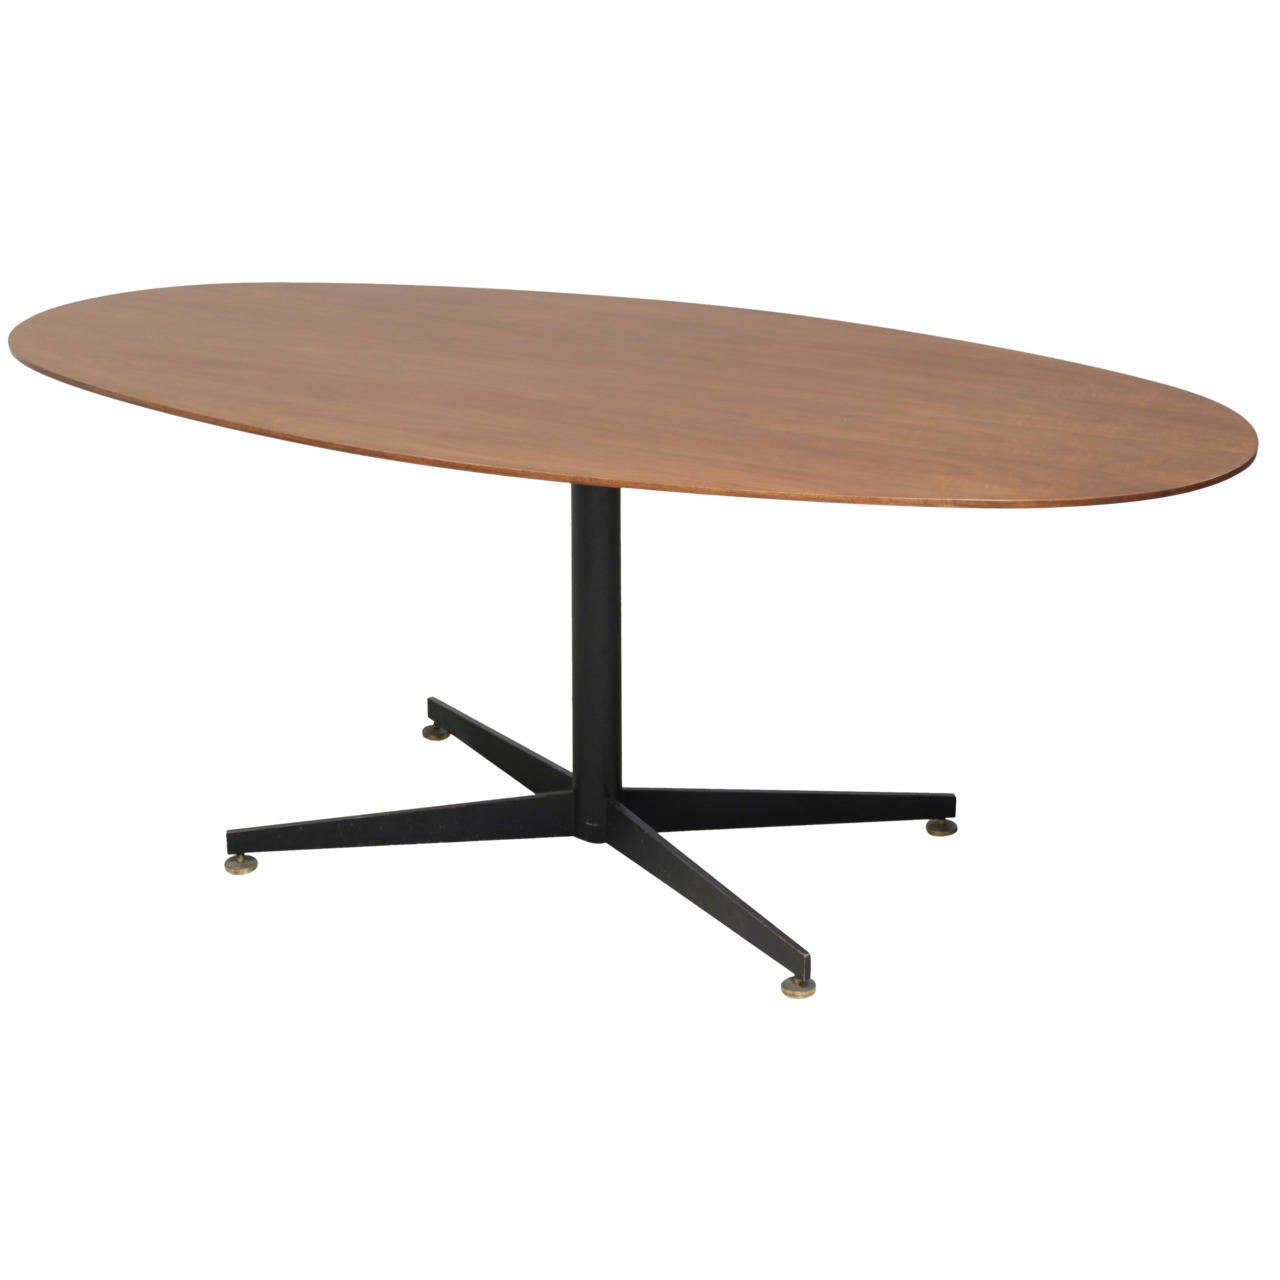 Oval Italian Dining Table with Wooden Top 1